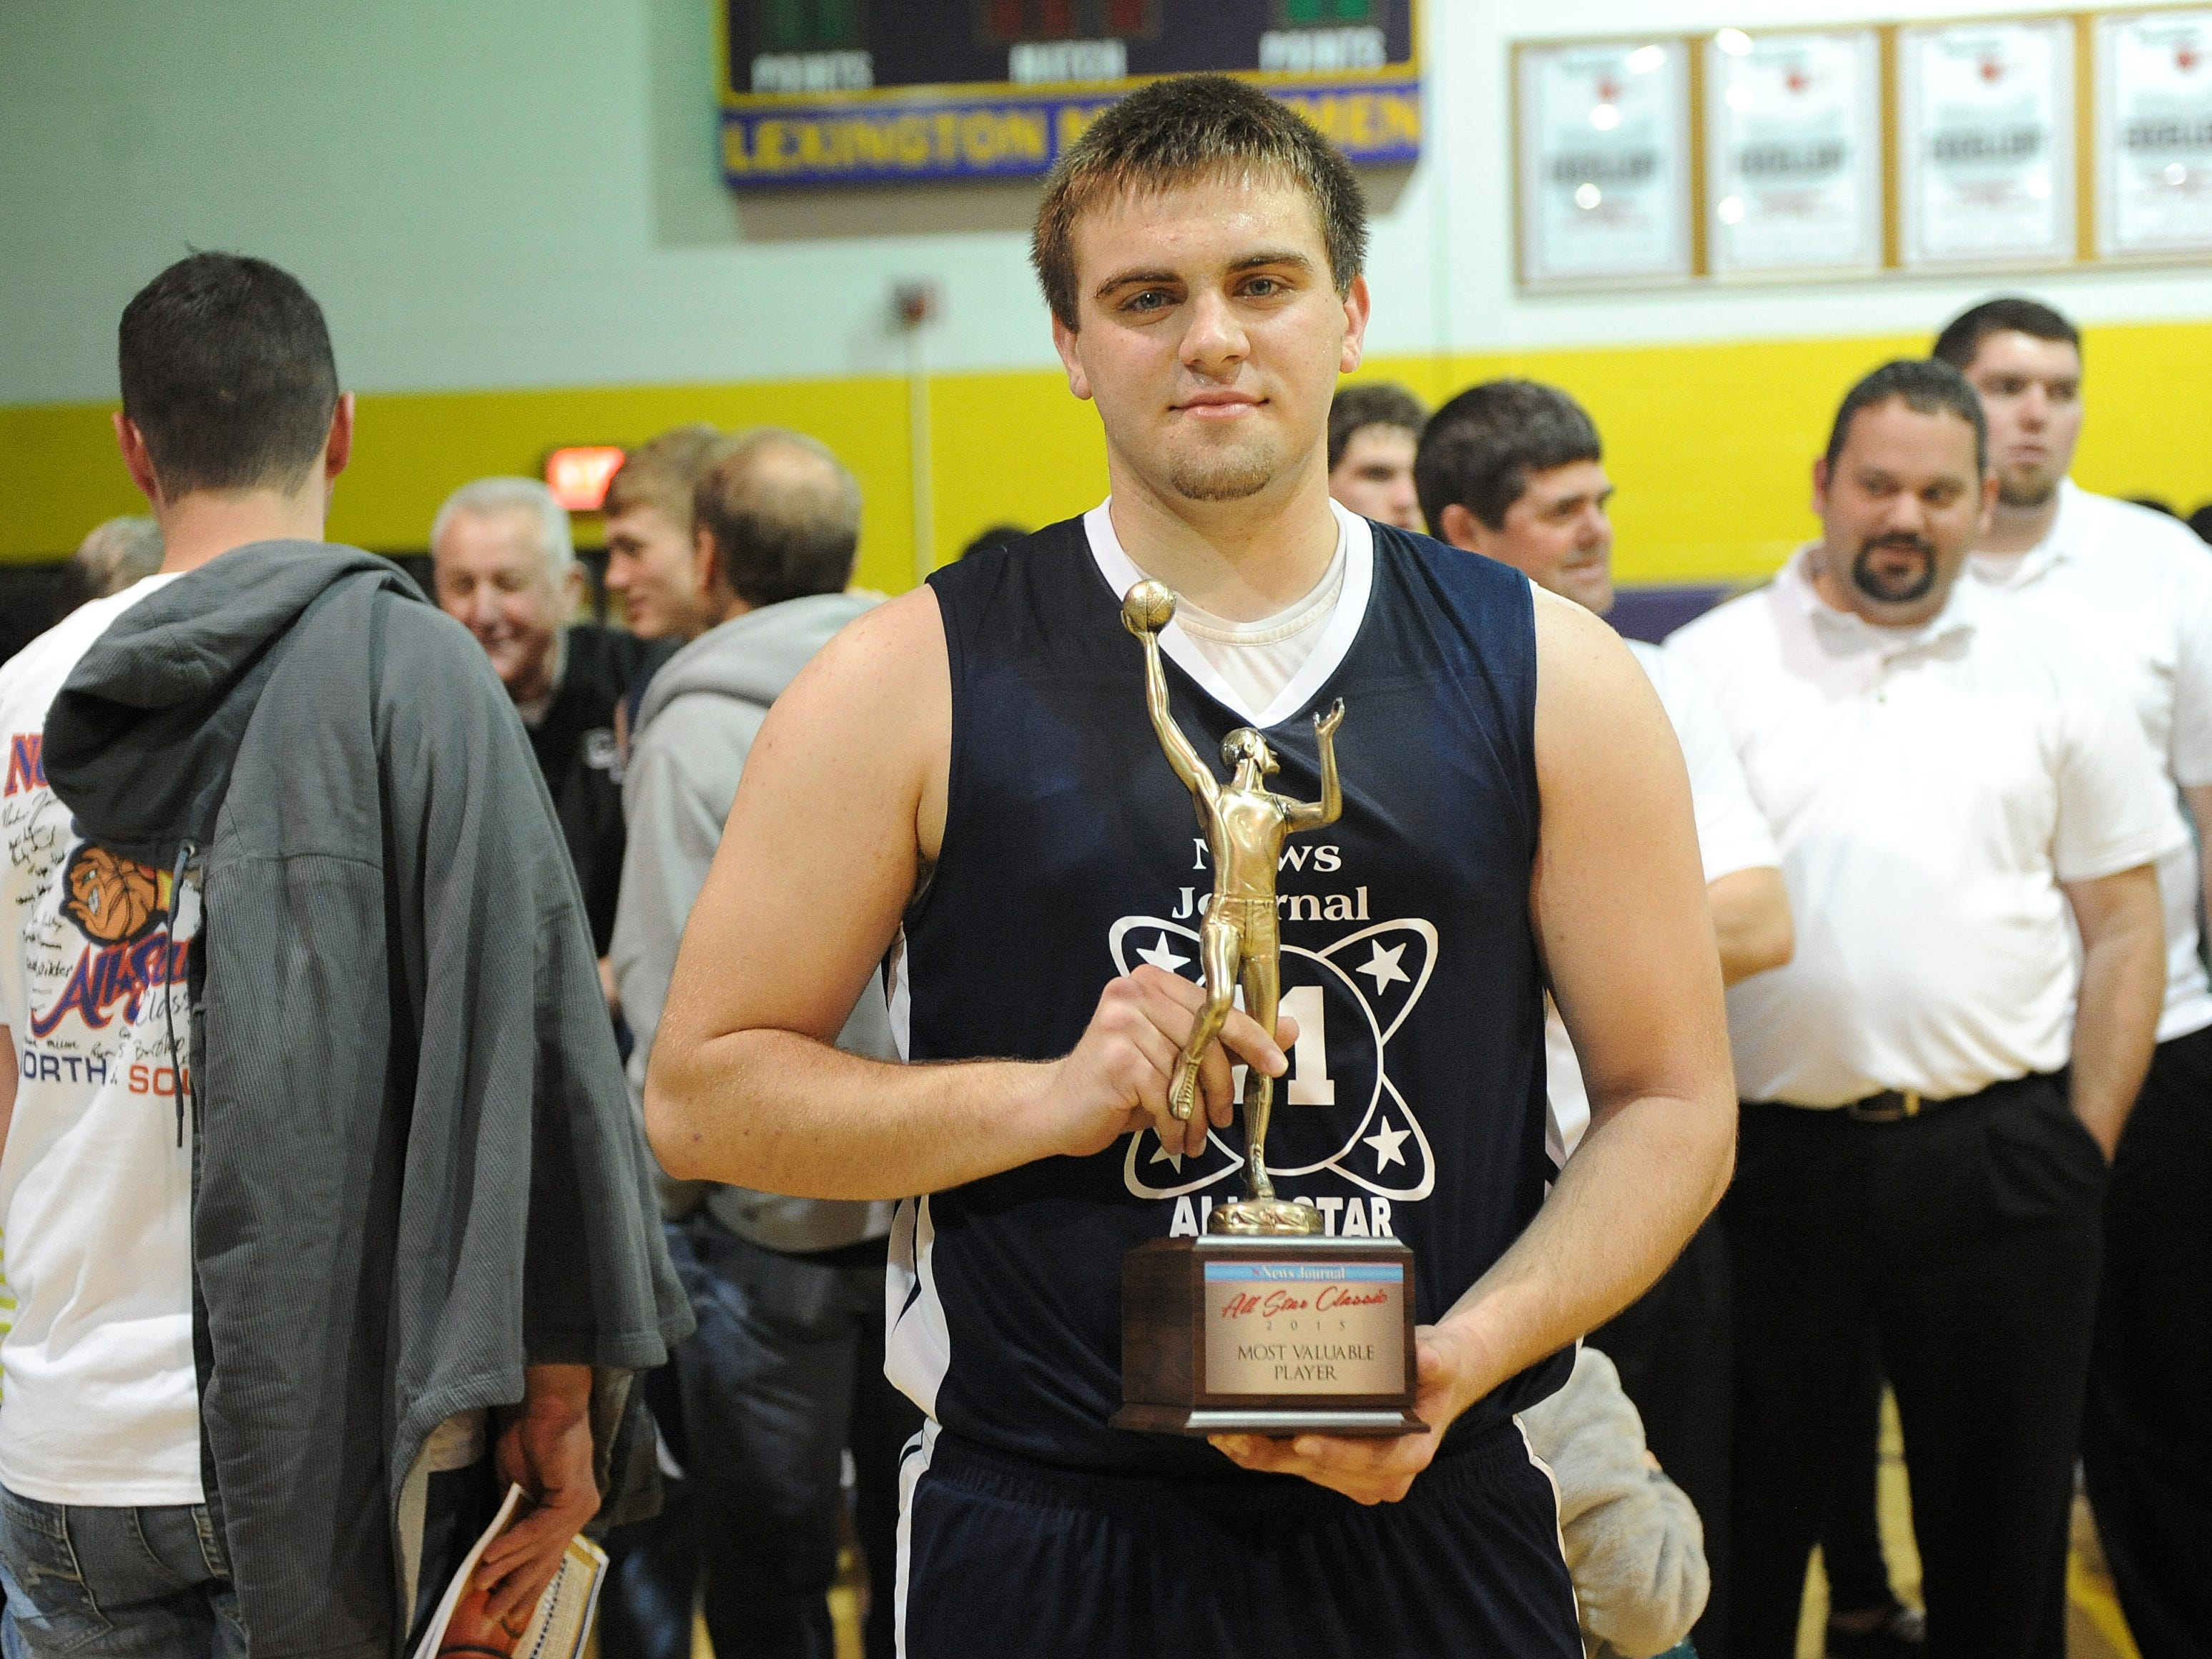 Tyson Beebe stands with a trophy after being named the MVP at Thursday night's 37th annual News Journal All-Star Basketball Classic game at Lextington High School.